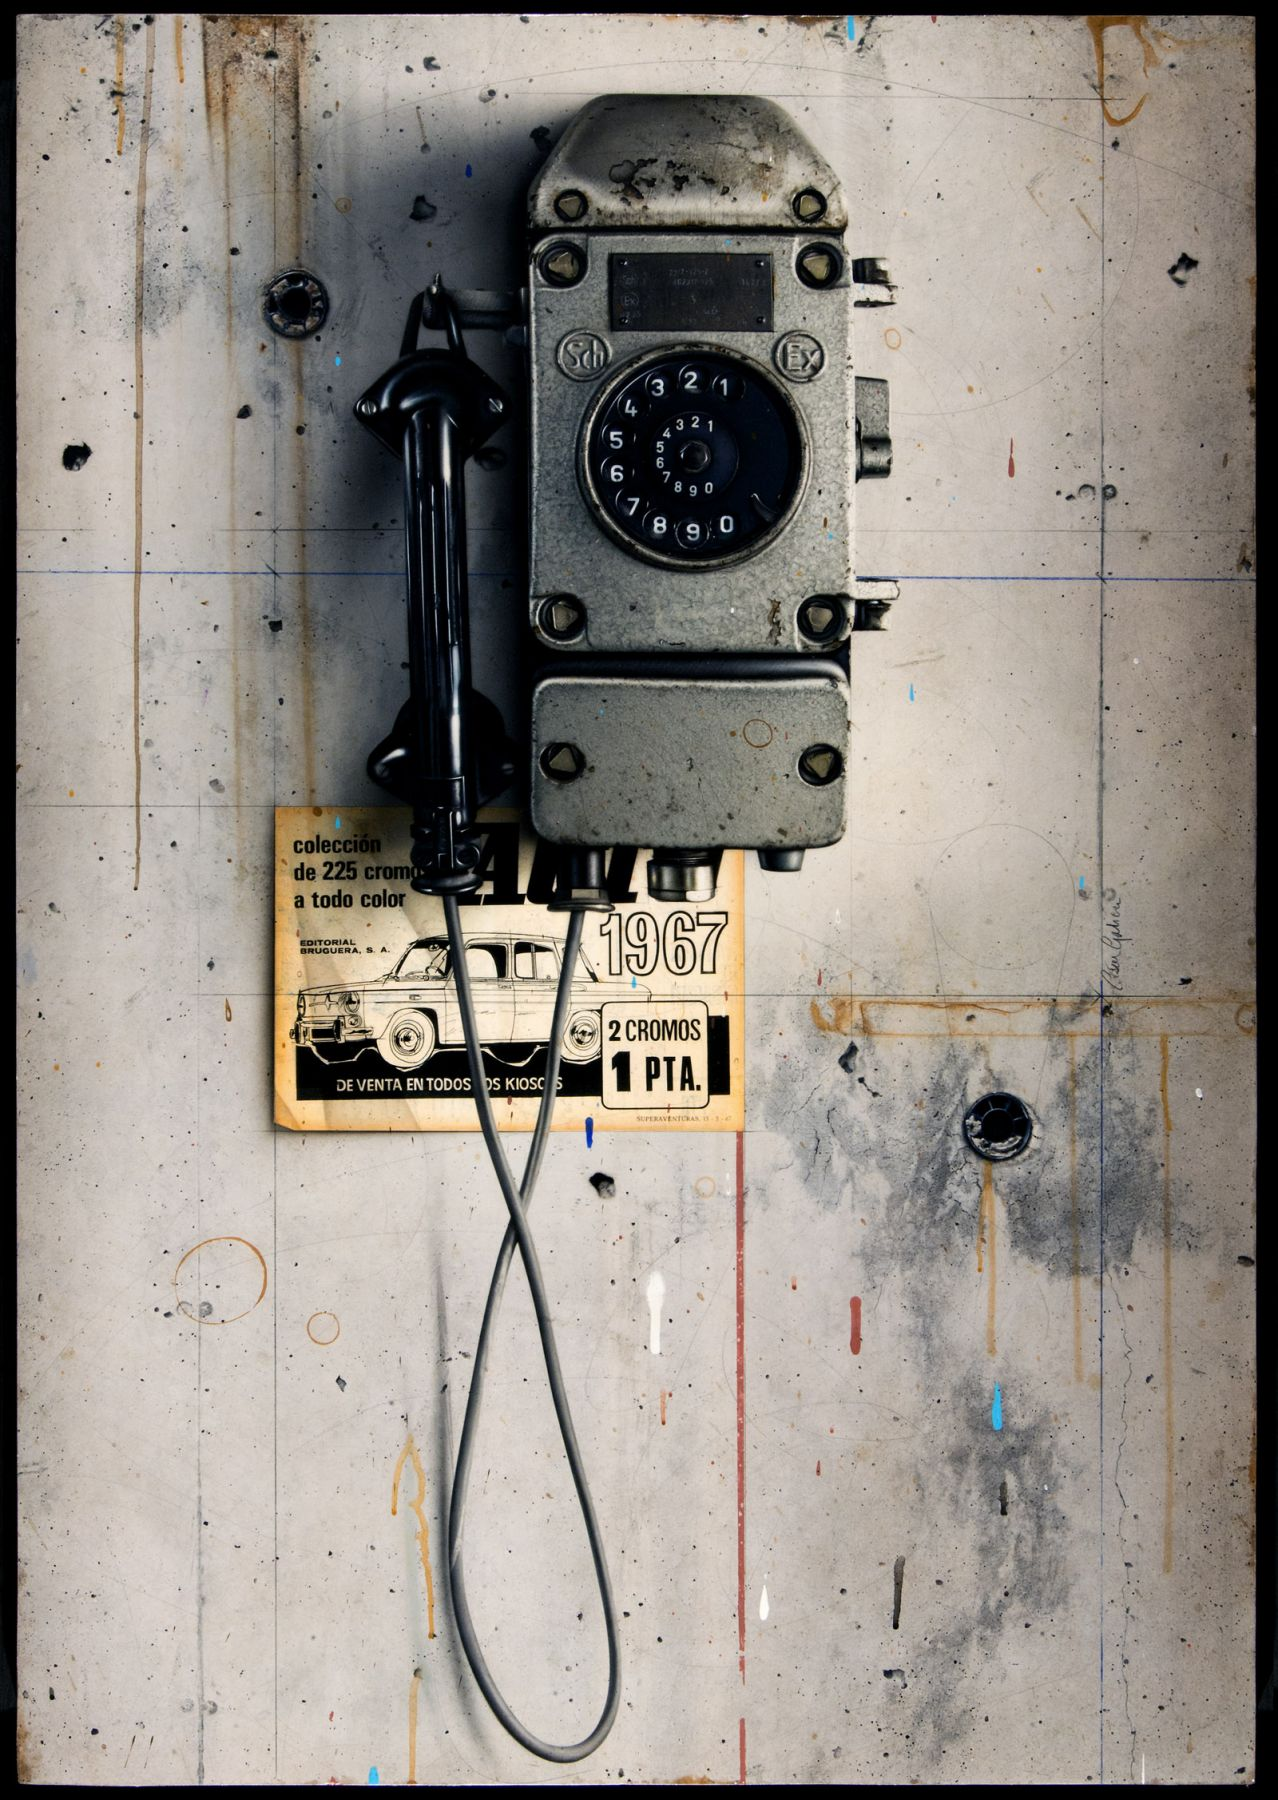 cesar galicia, Telephone (SOLD), 2012, mixed media on board, 36 1/4 x 25 1/4 inches